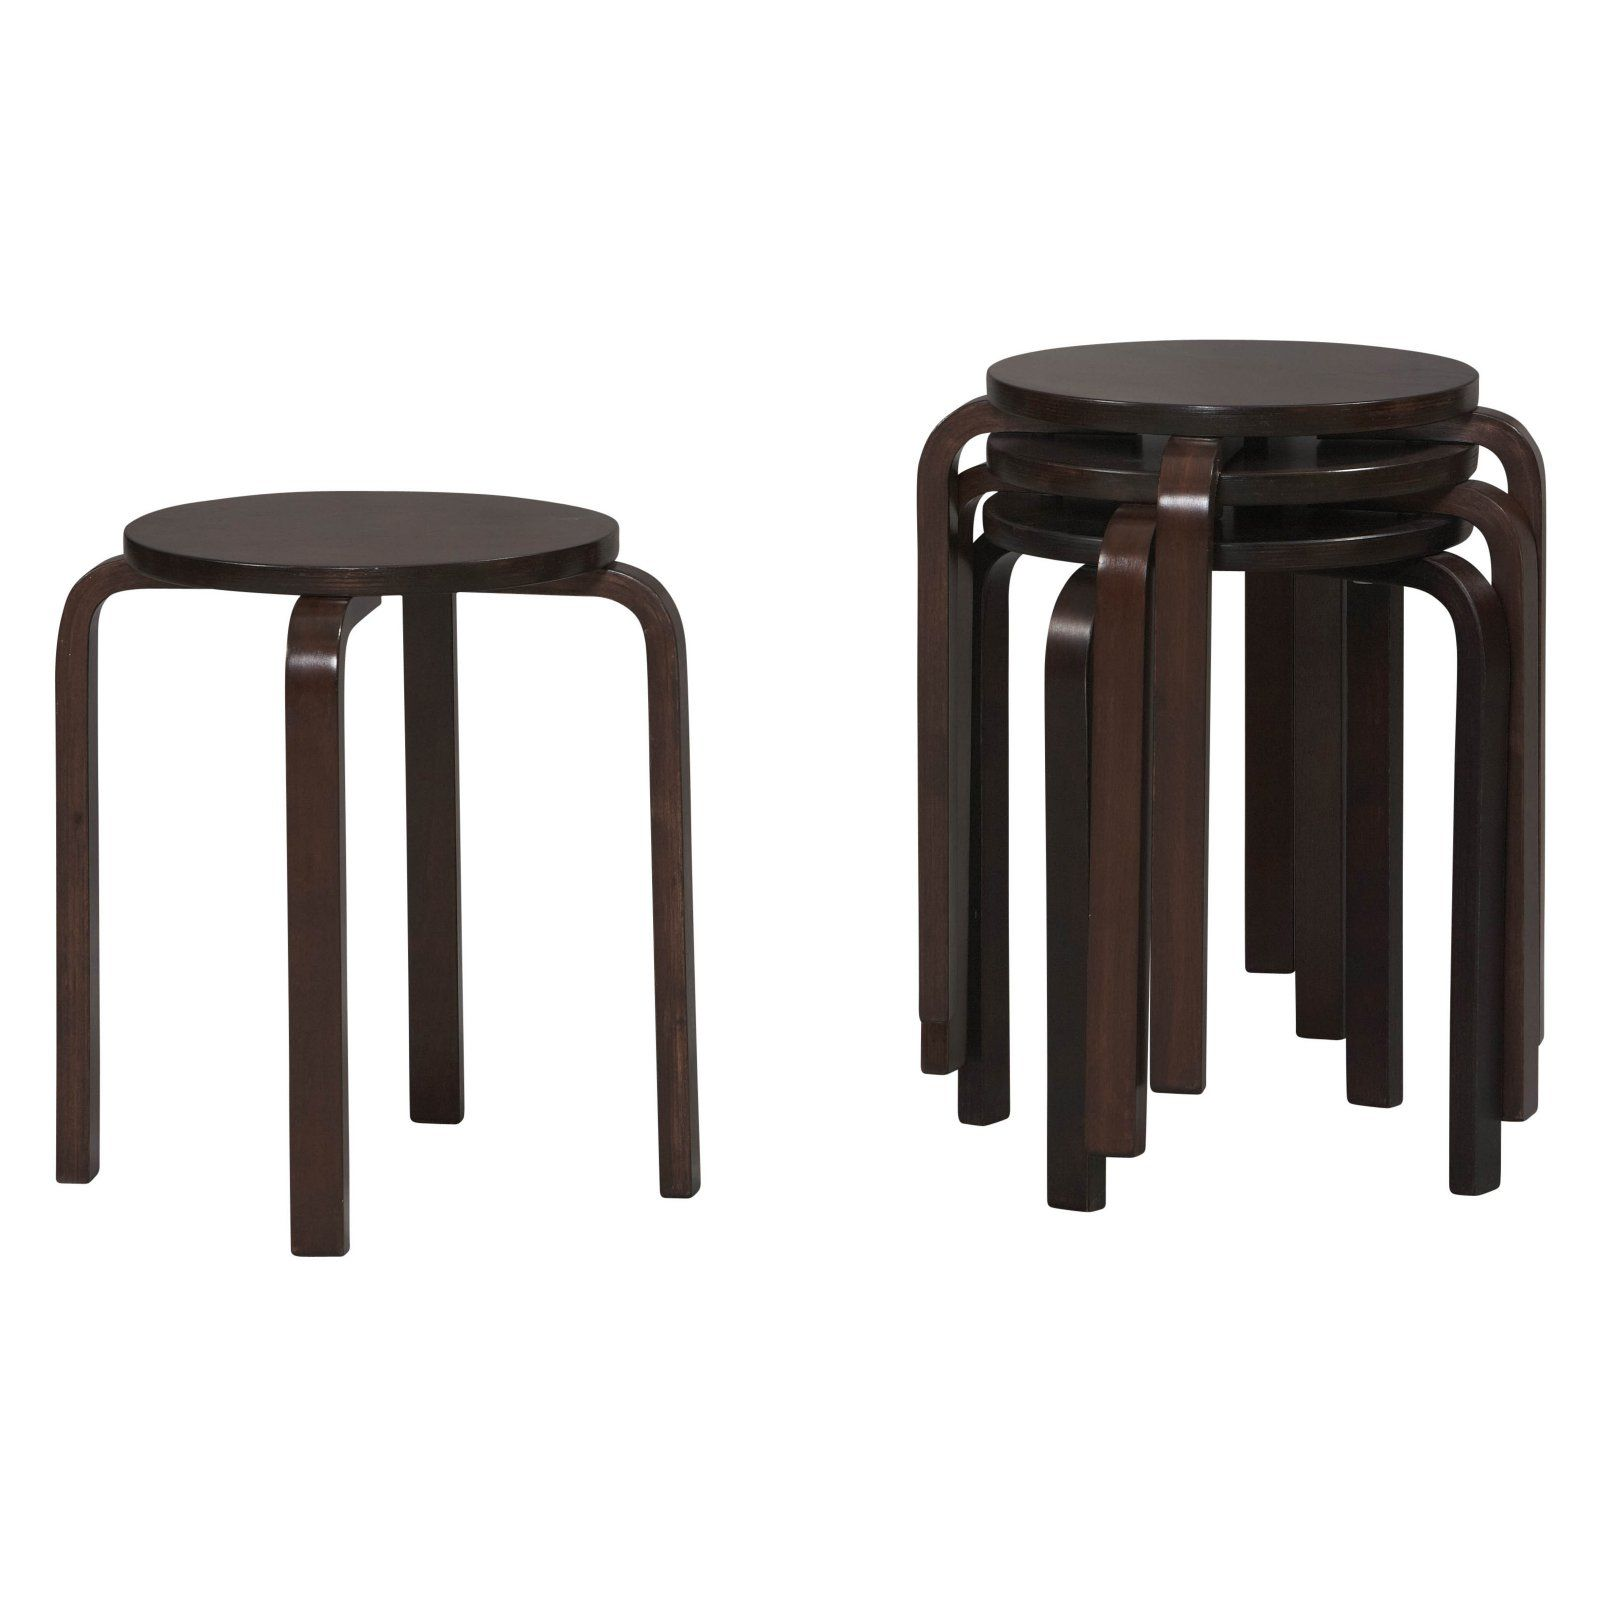 Superb Linon Bentwood Stackable Short Stool 17 In Set Of 4 Squirreltailoven Fun Painted Chair Ideas Images Squirreltailovenorg